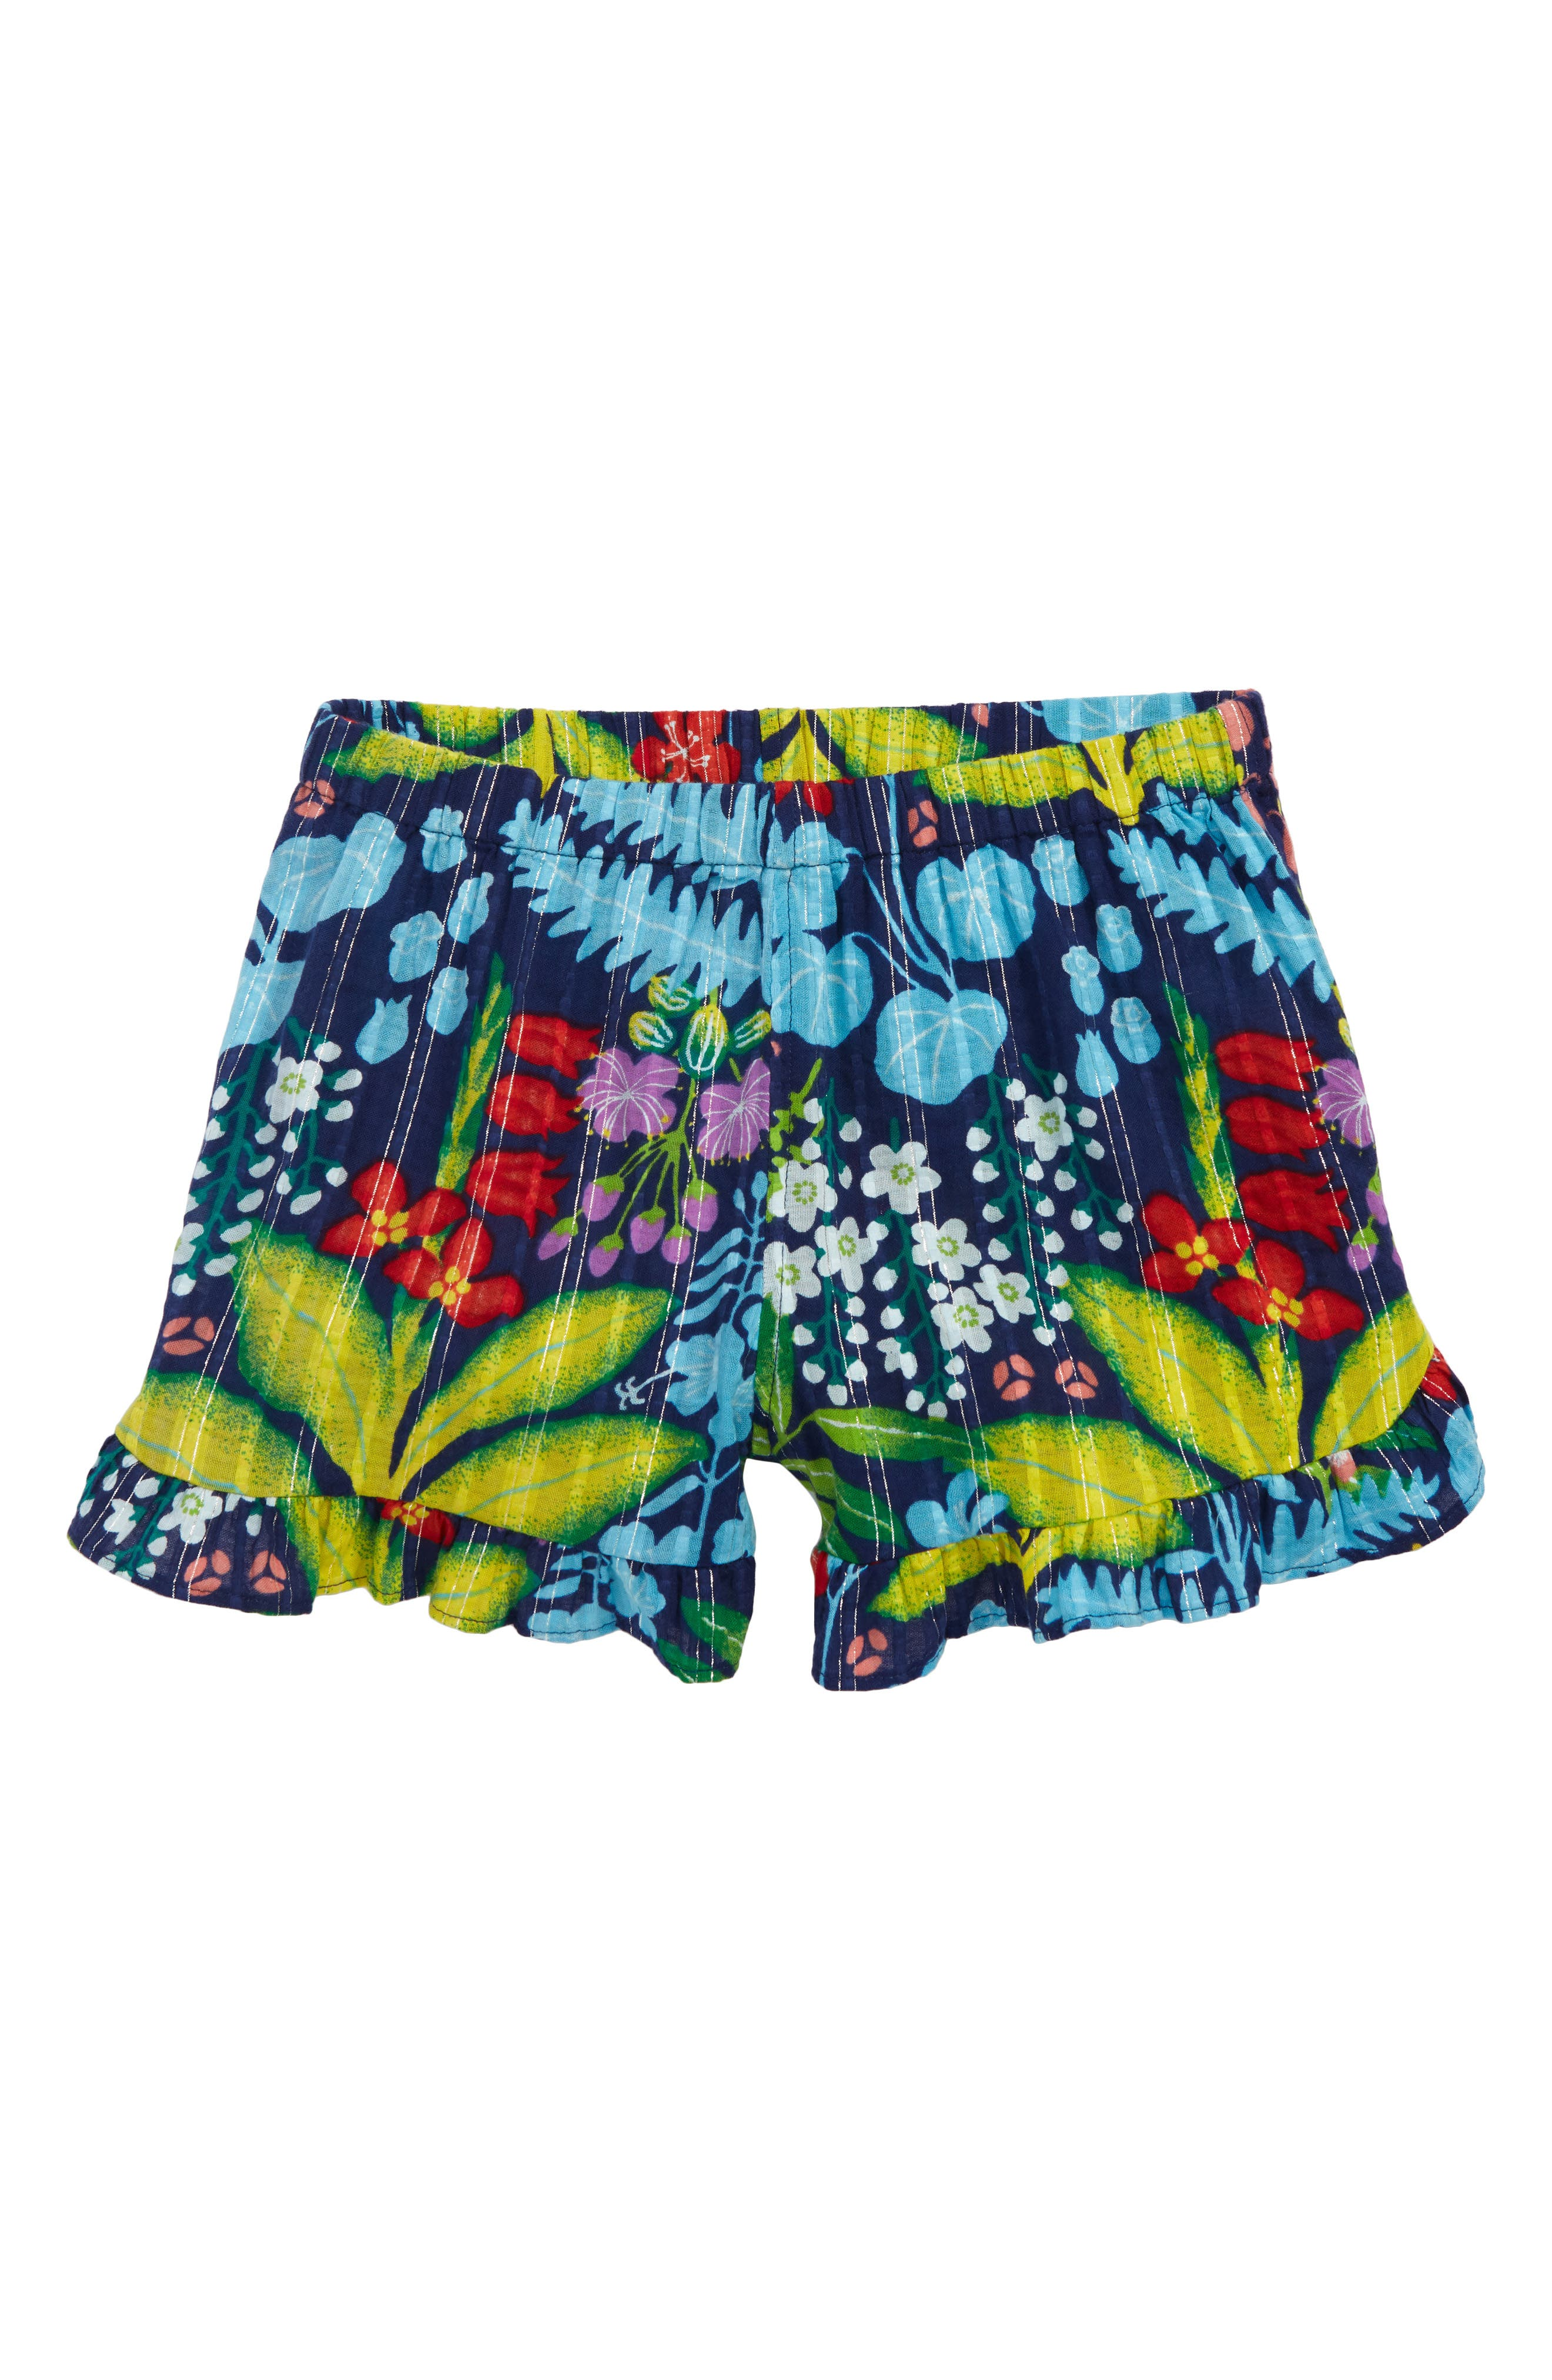 Girls Crewcuts By Jcrew Tropical Floral Ruffle Shorts Size 8  Blue